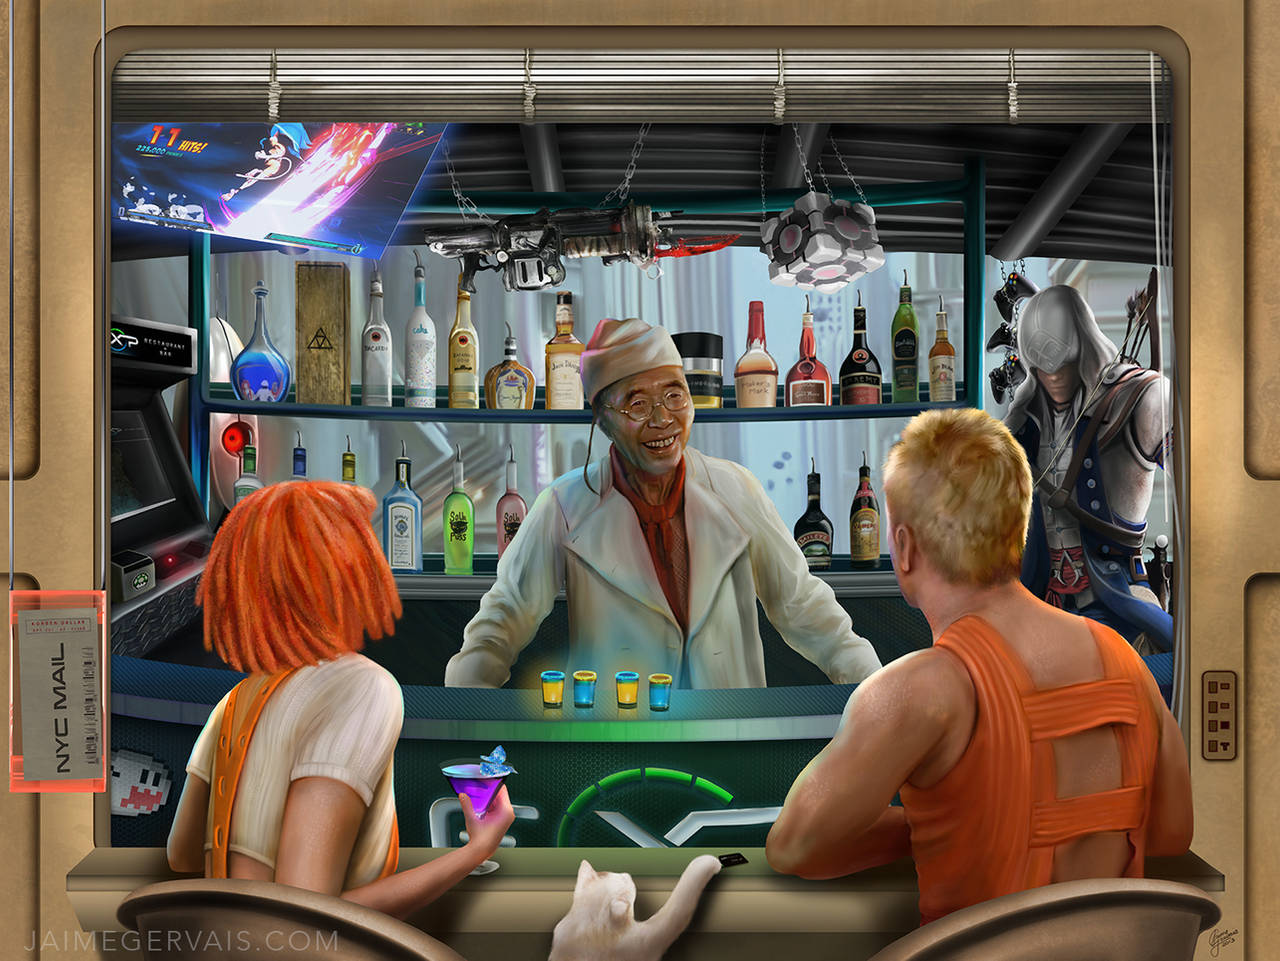 Exp Restaurant and Bar meets the Fifth Element by JaimeGervais